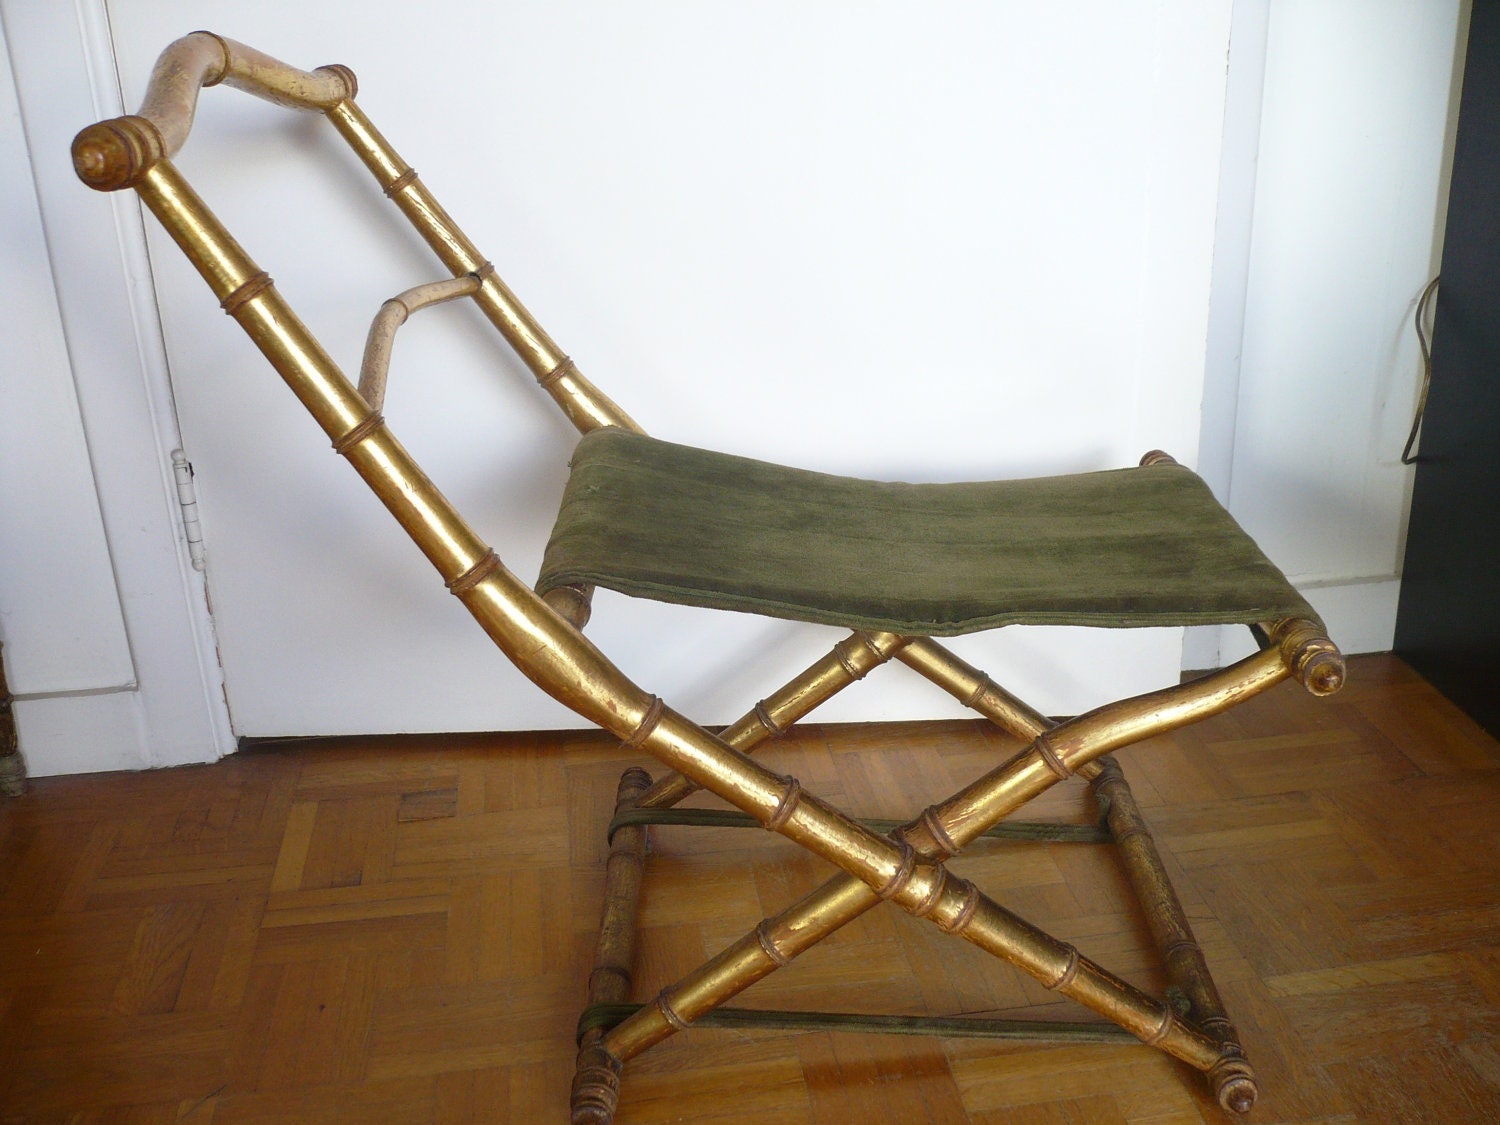 Pliant xix me nap iii imitation bambou dor feuille or gold chair chaise anti - Chaise imitation cuir ...